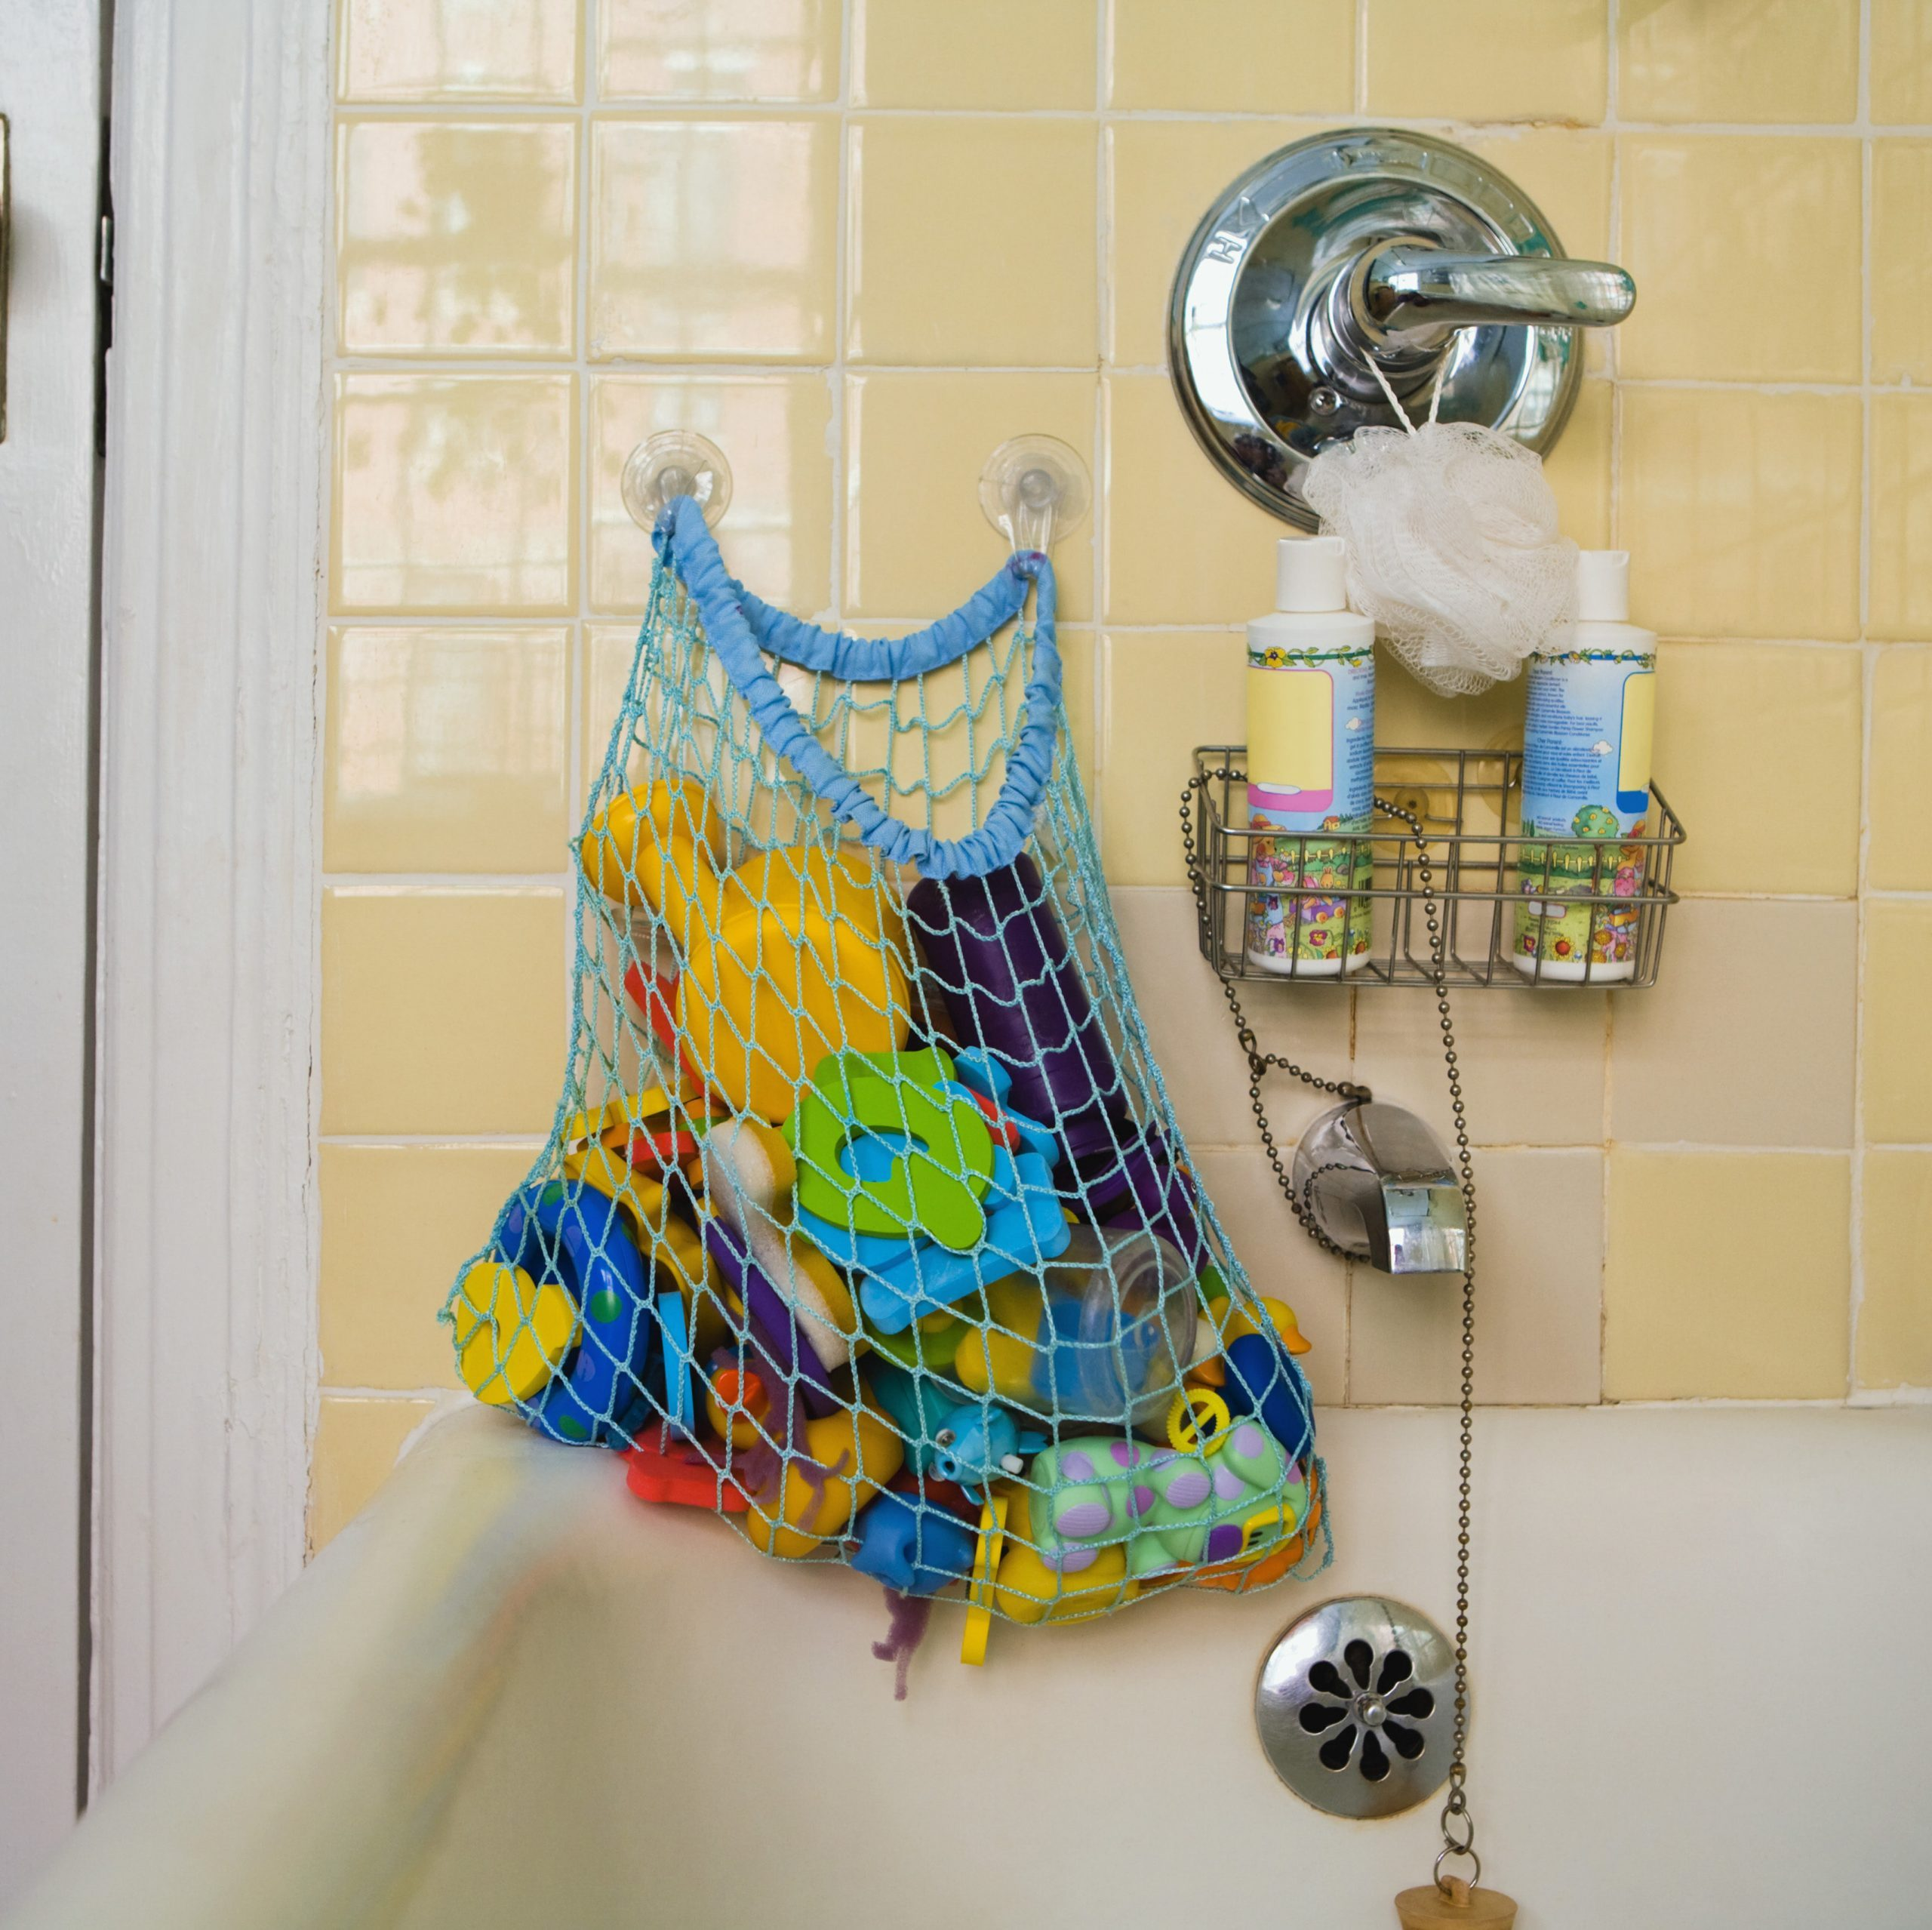 mesh bag of bath toys hanging on suction cup wall hooks